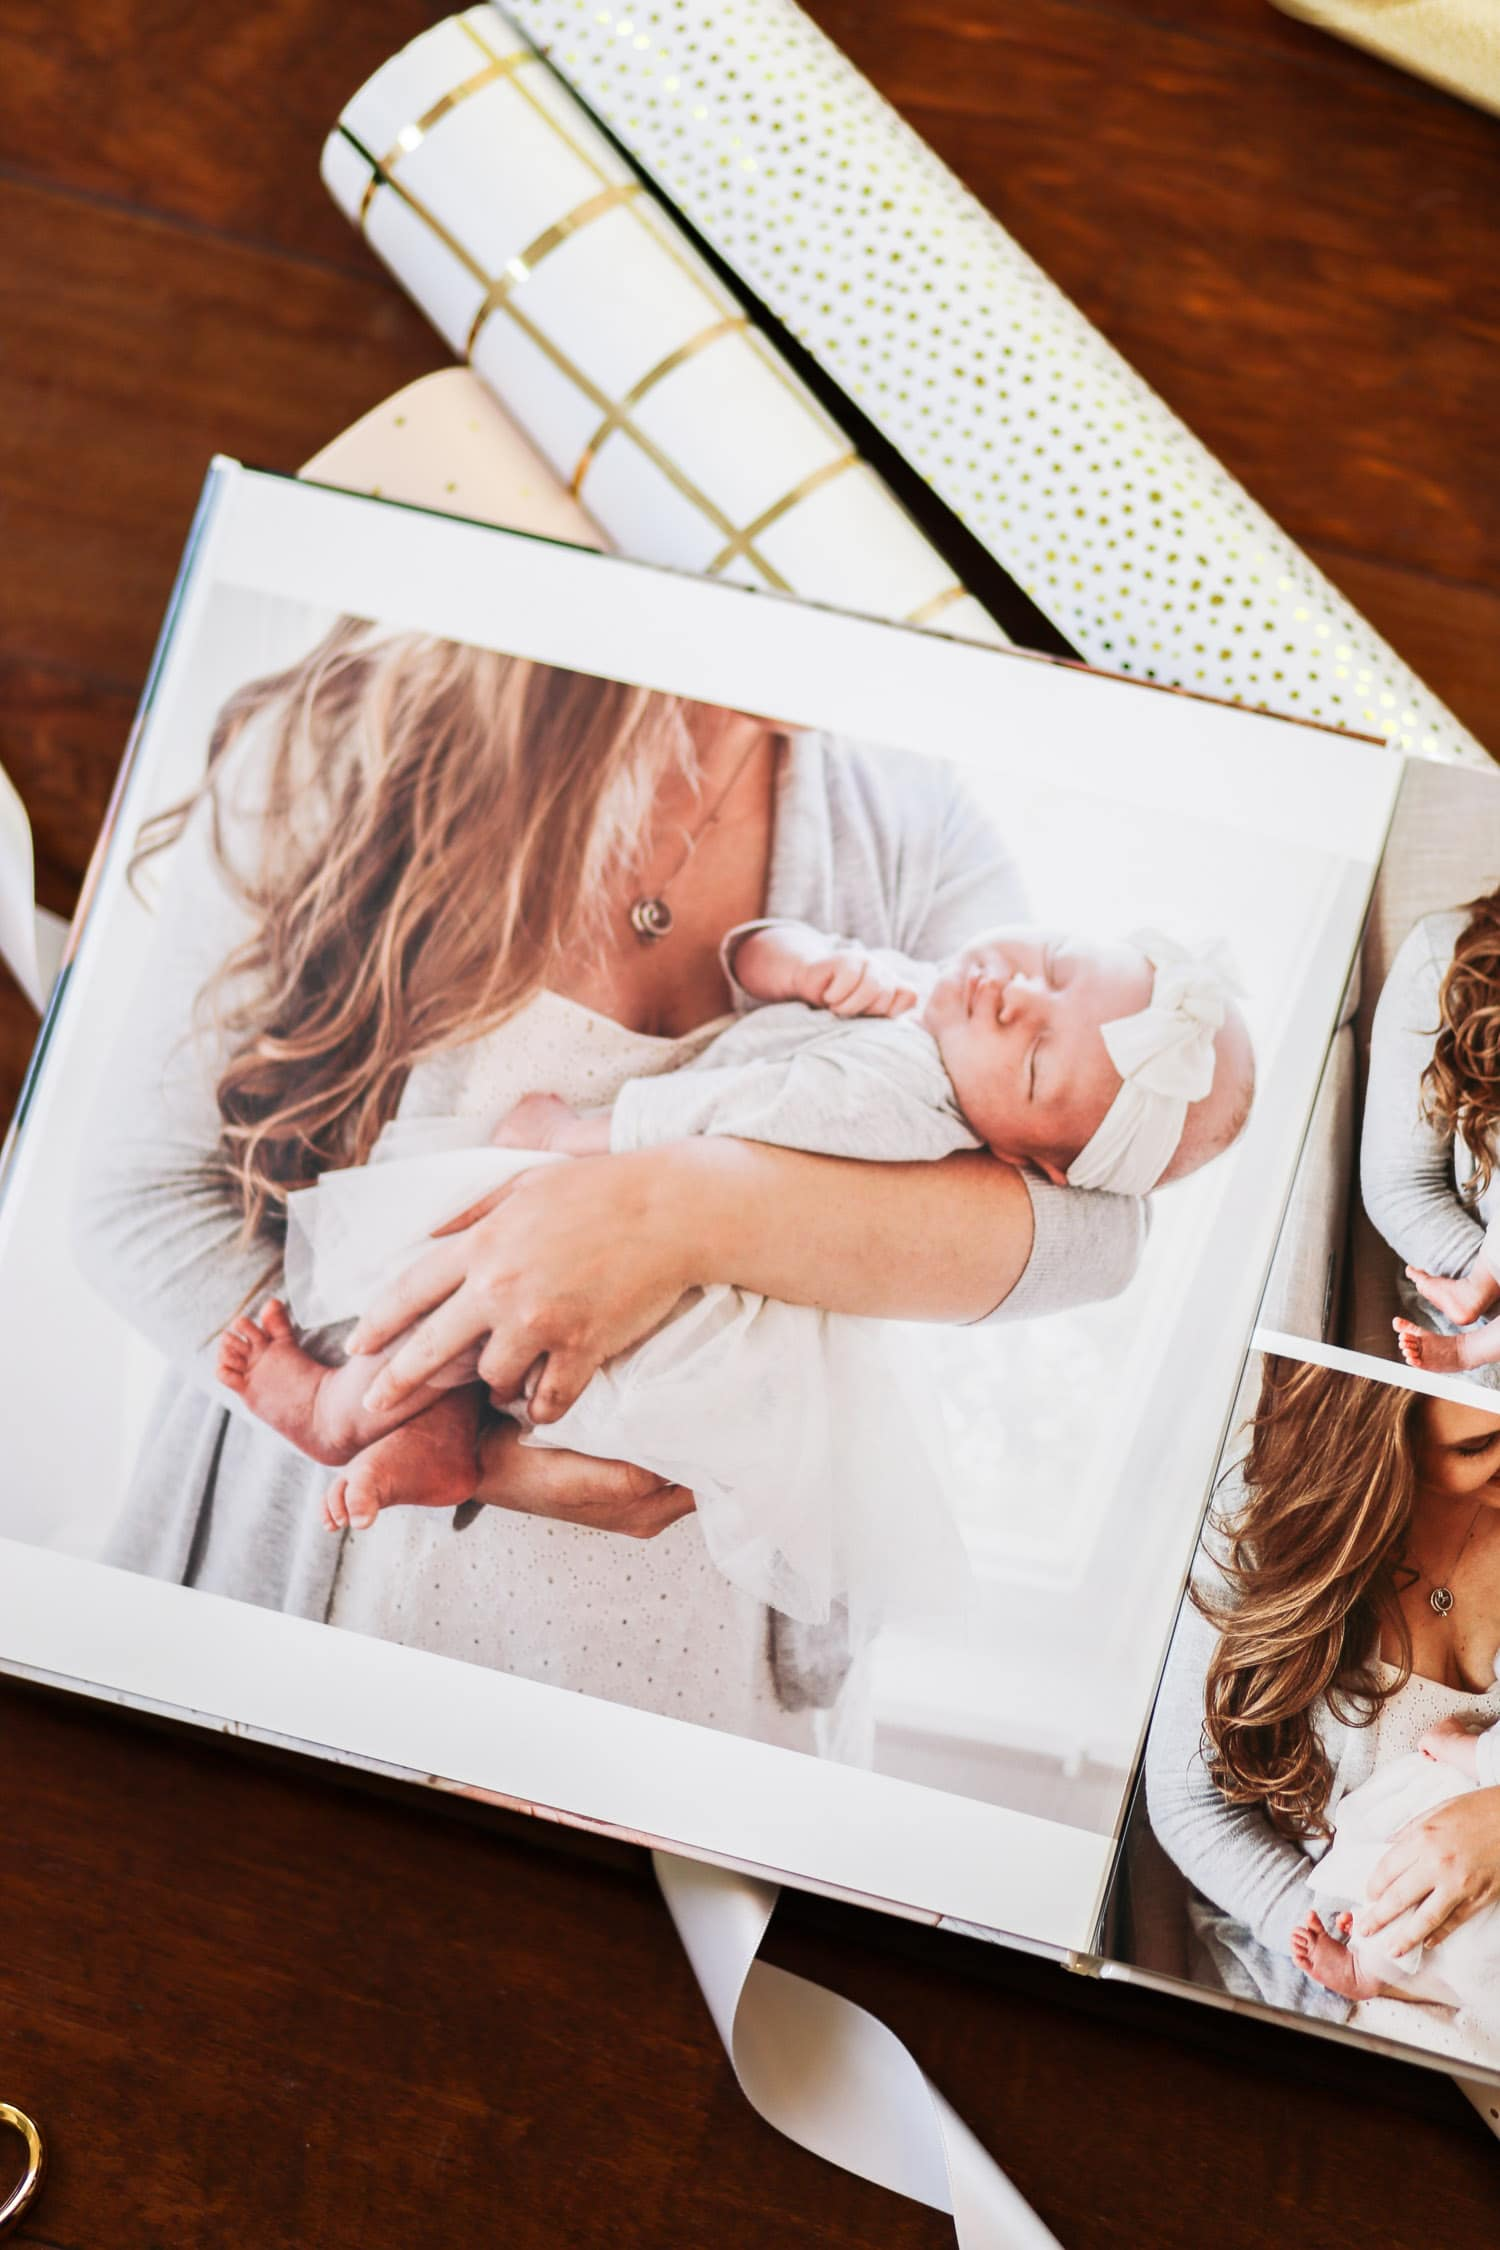 Personalized Christmas Gift Ideas from Shutterfly | Ashley Brooke ...